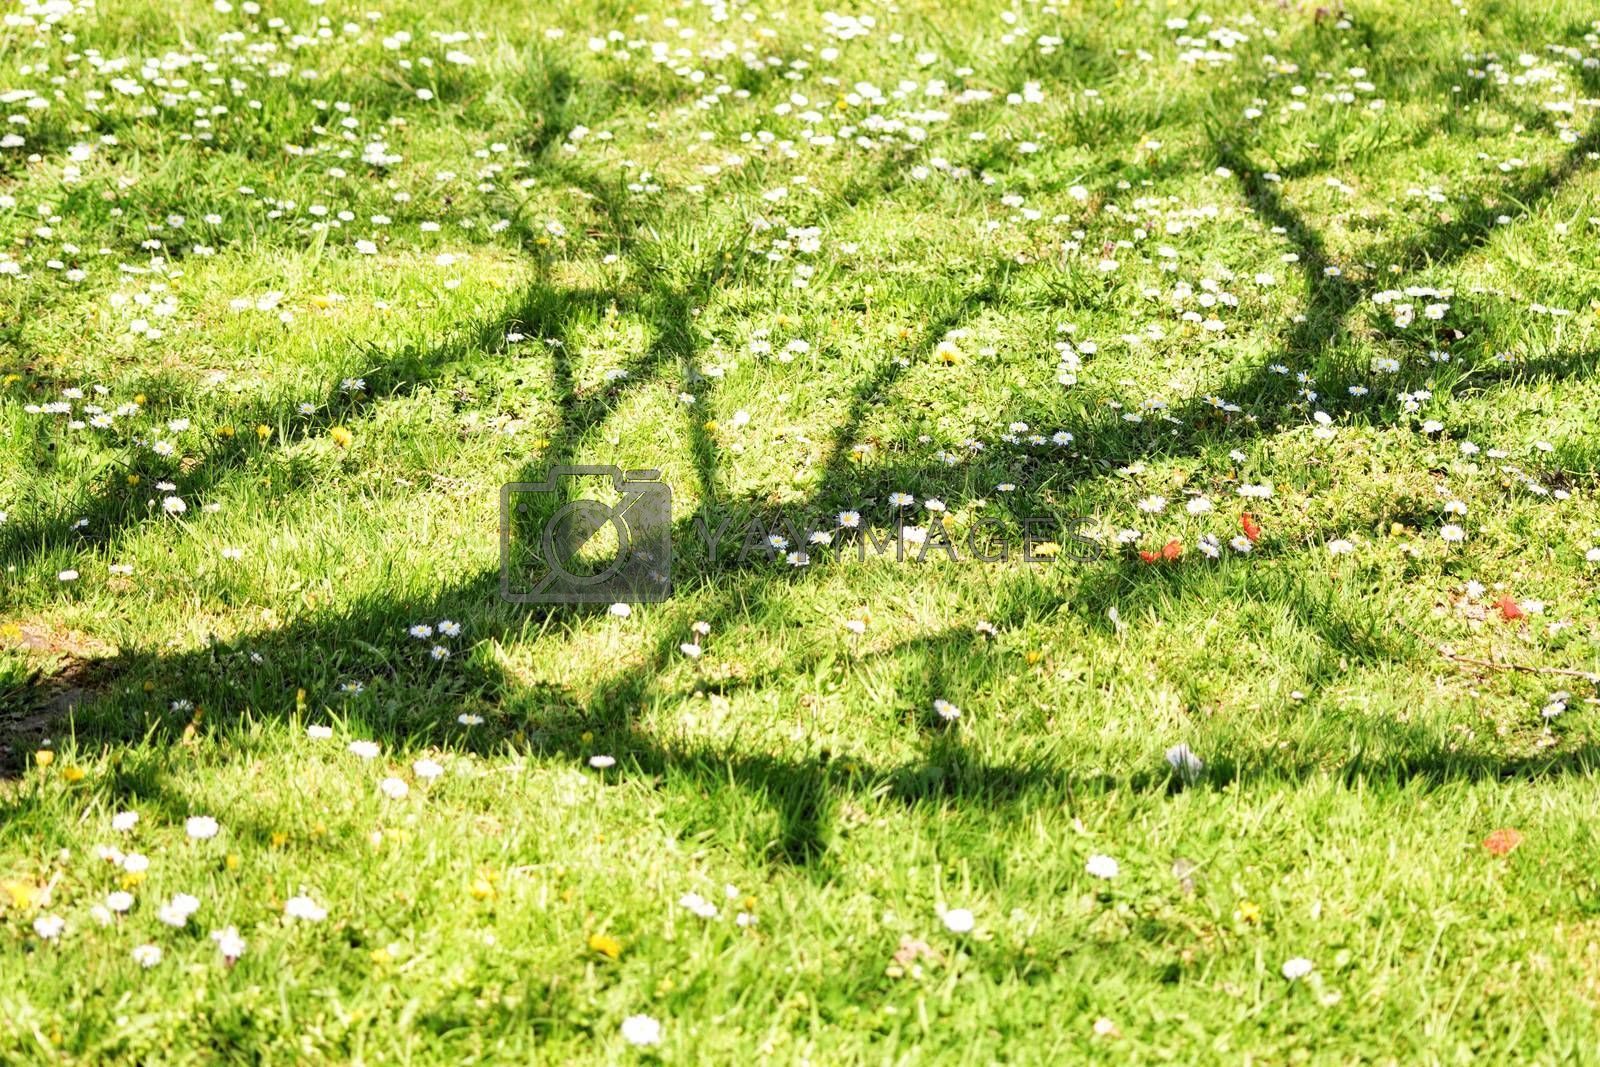 Withered tree shadow over green grass on a sunny day.